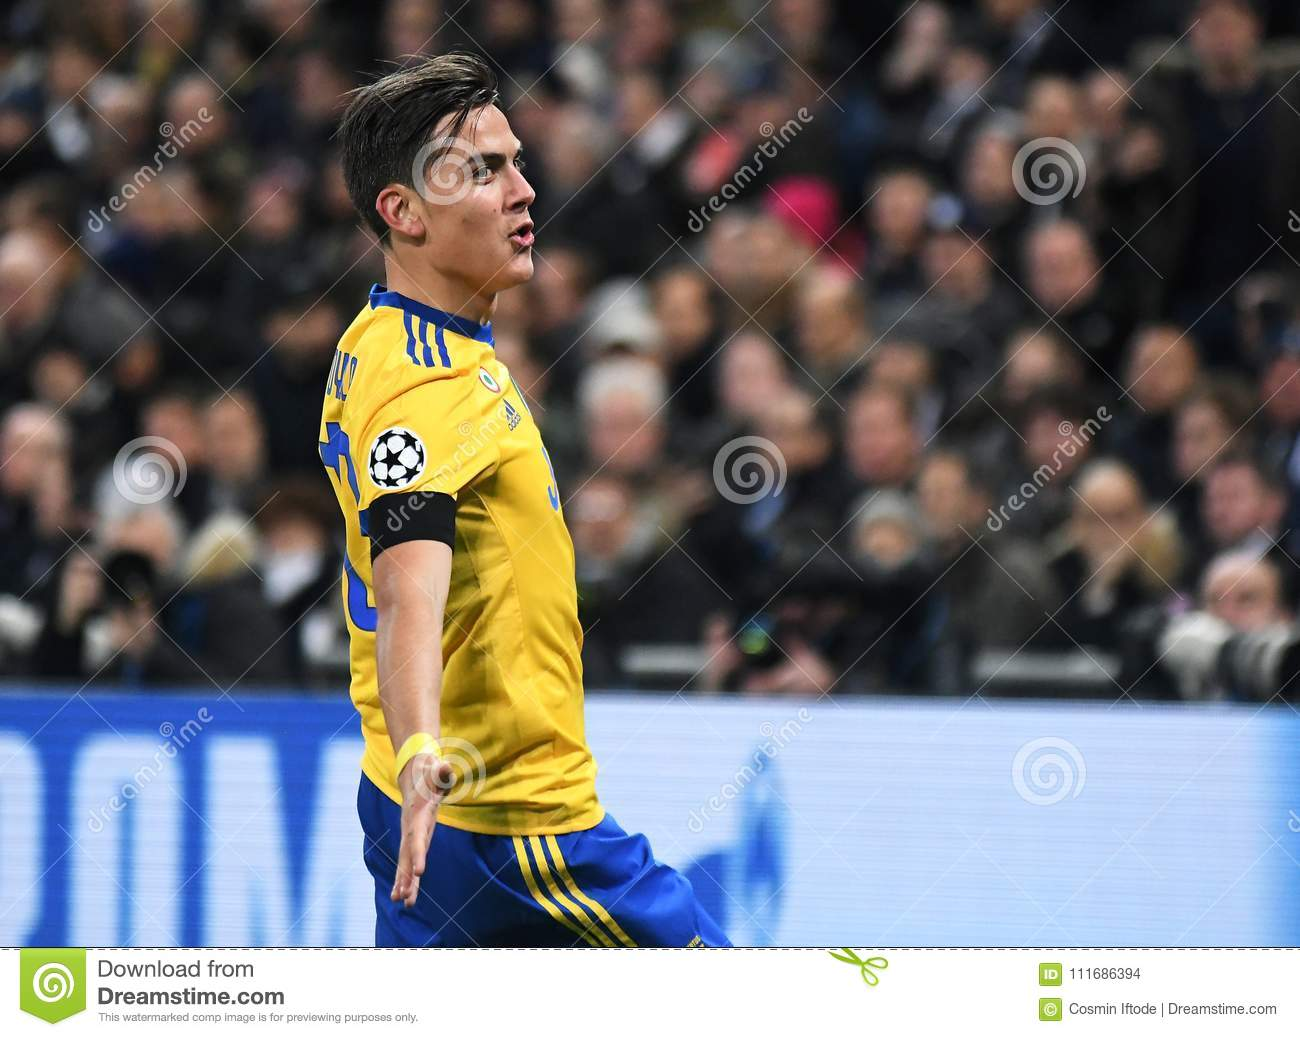 Celebration De But De Paulo Dybala Image Stock Editorial Image Du